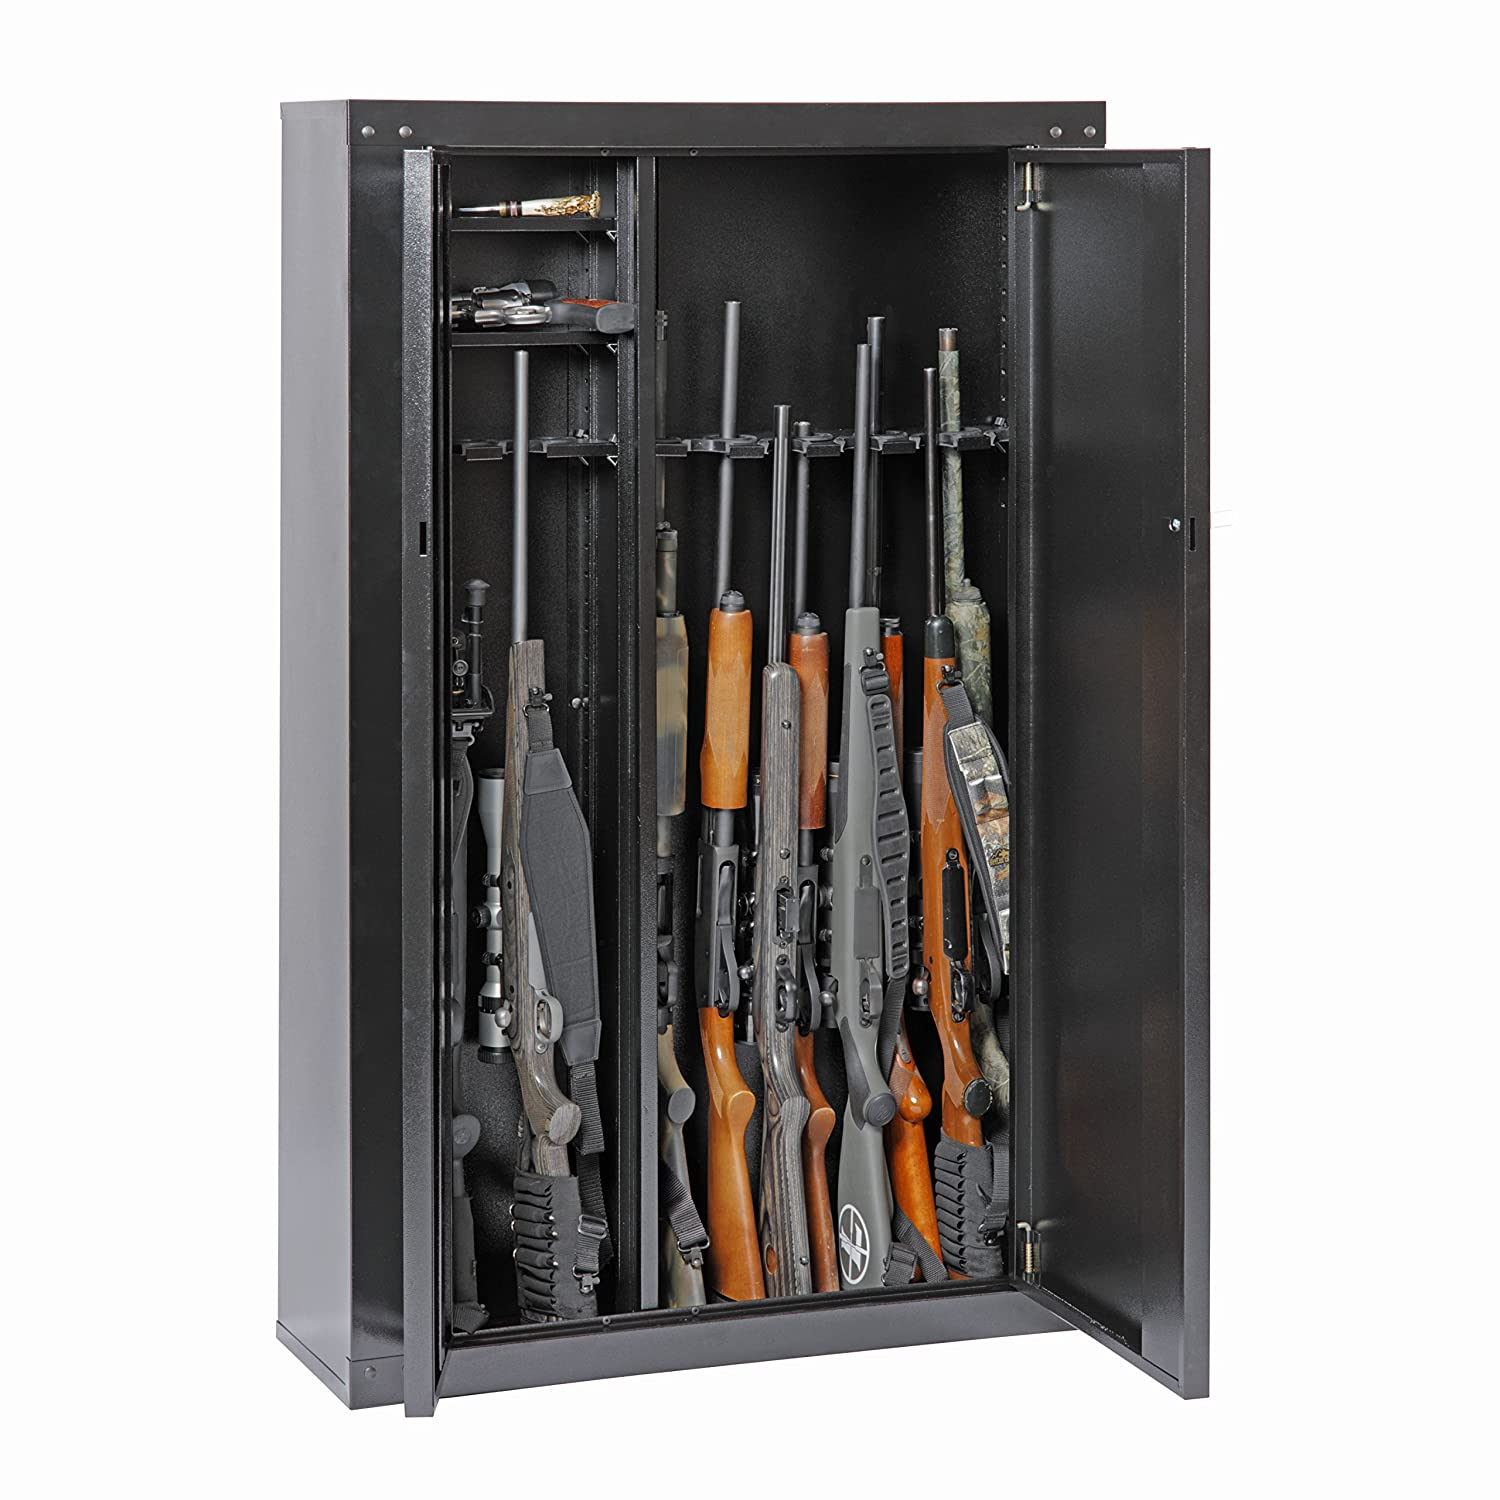 Gun Security Cabinet >> Amazon Com American Furniture Classics Gun Security Cabinet 16 Gun